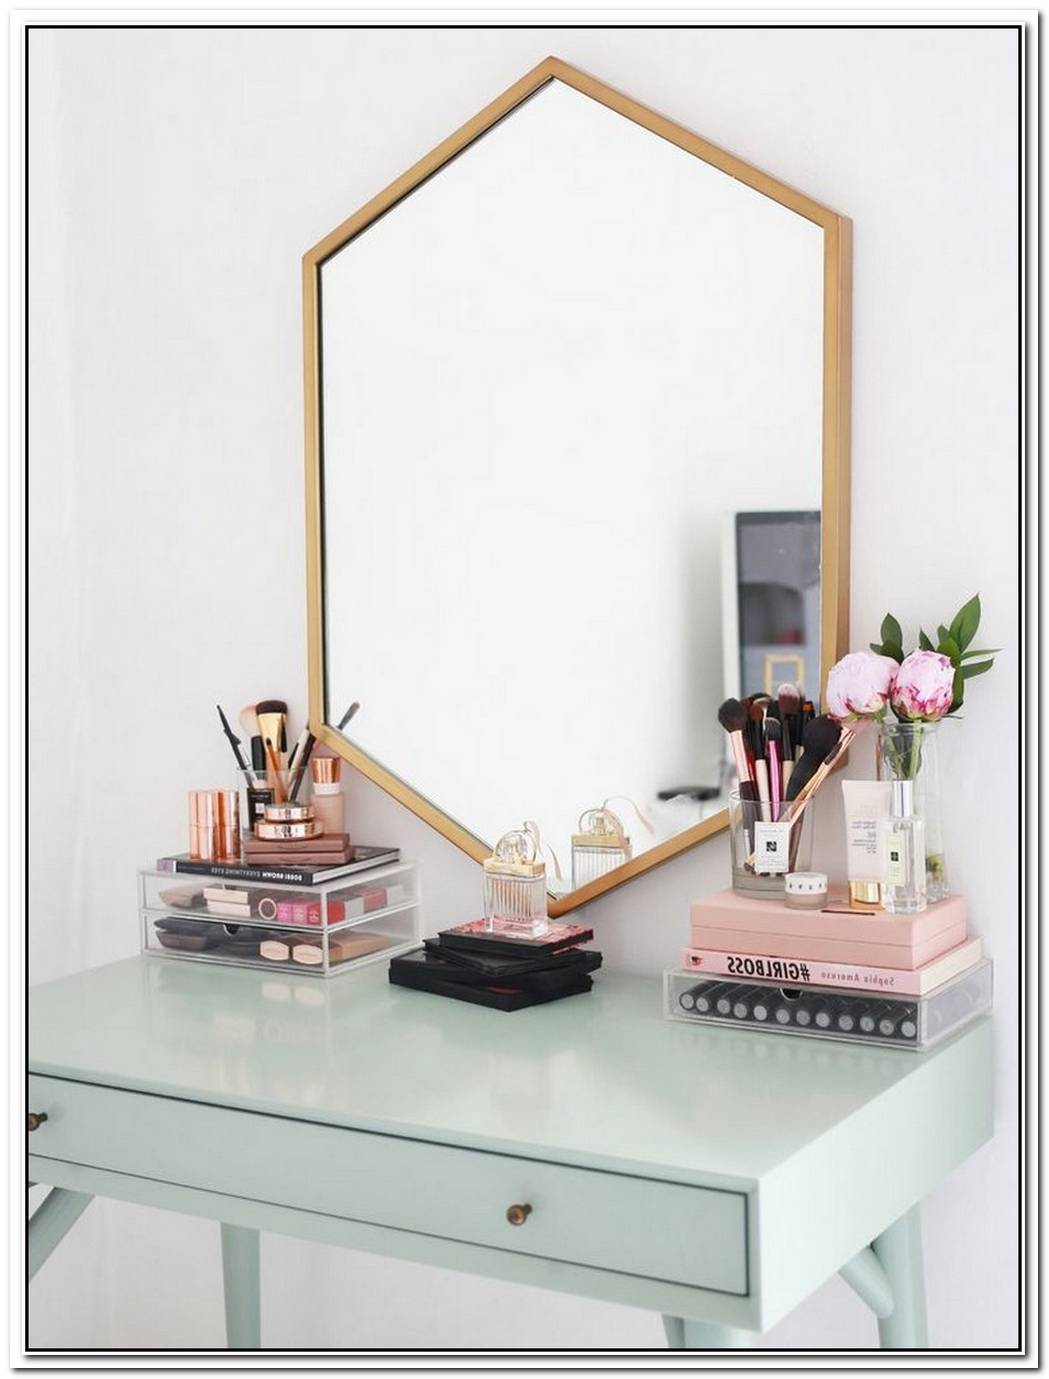 16 Accessories Perfect For Your Vanity Table